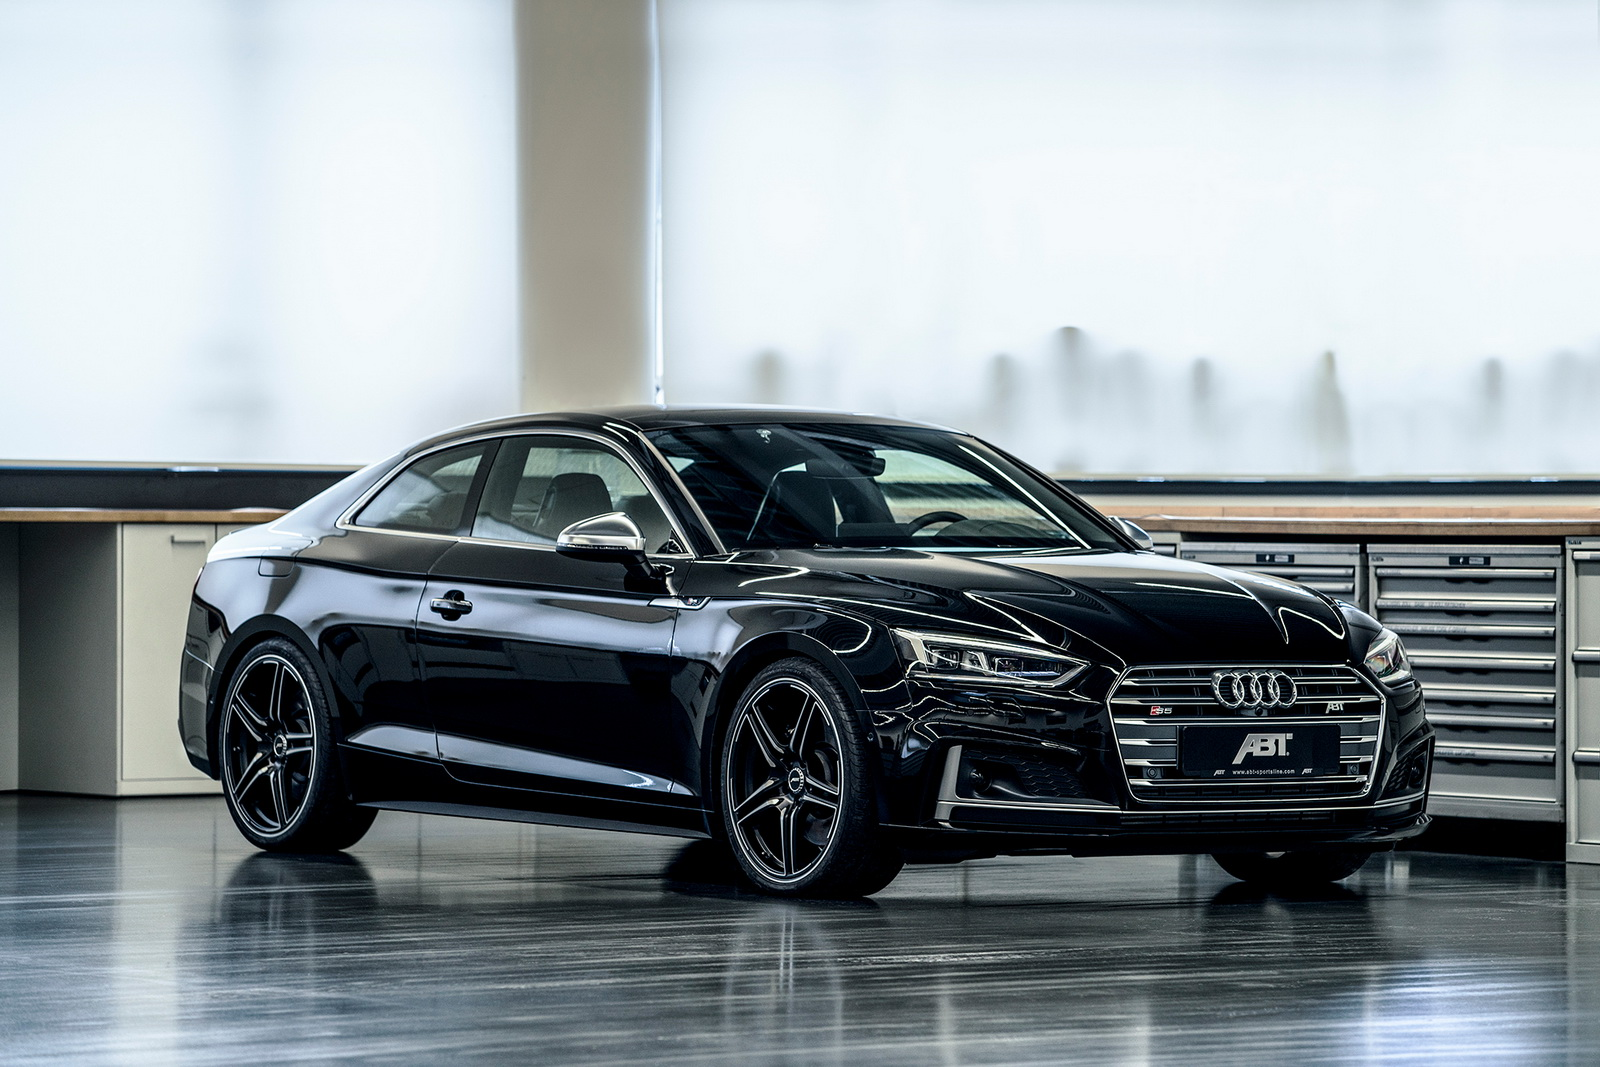 Audi S5 Tuned By Abt Packs 425 Hp Makes Rs5 Wait Easier Autoevolution